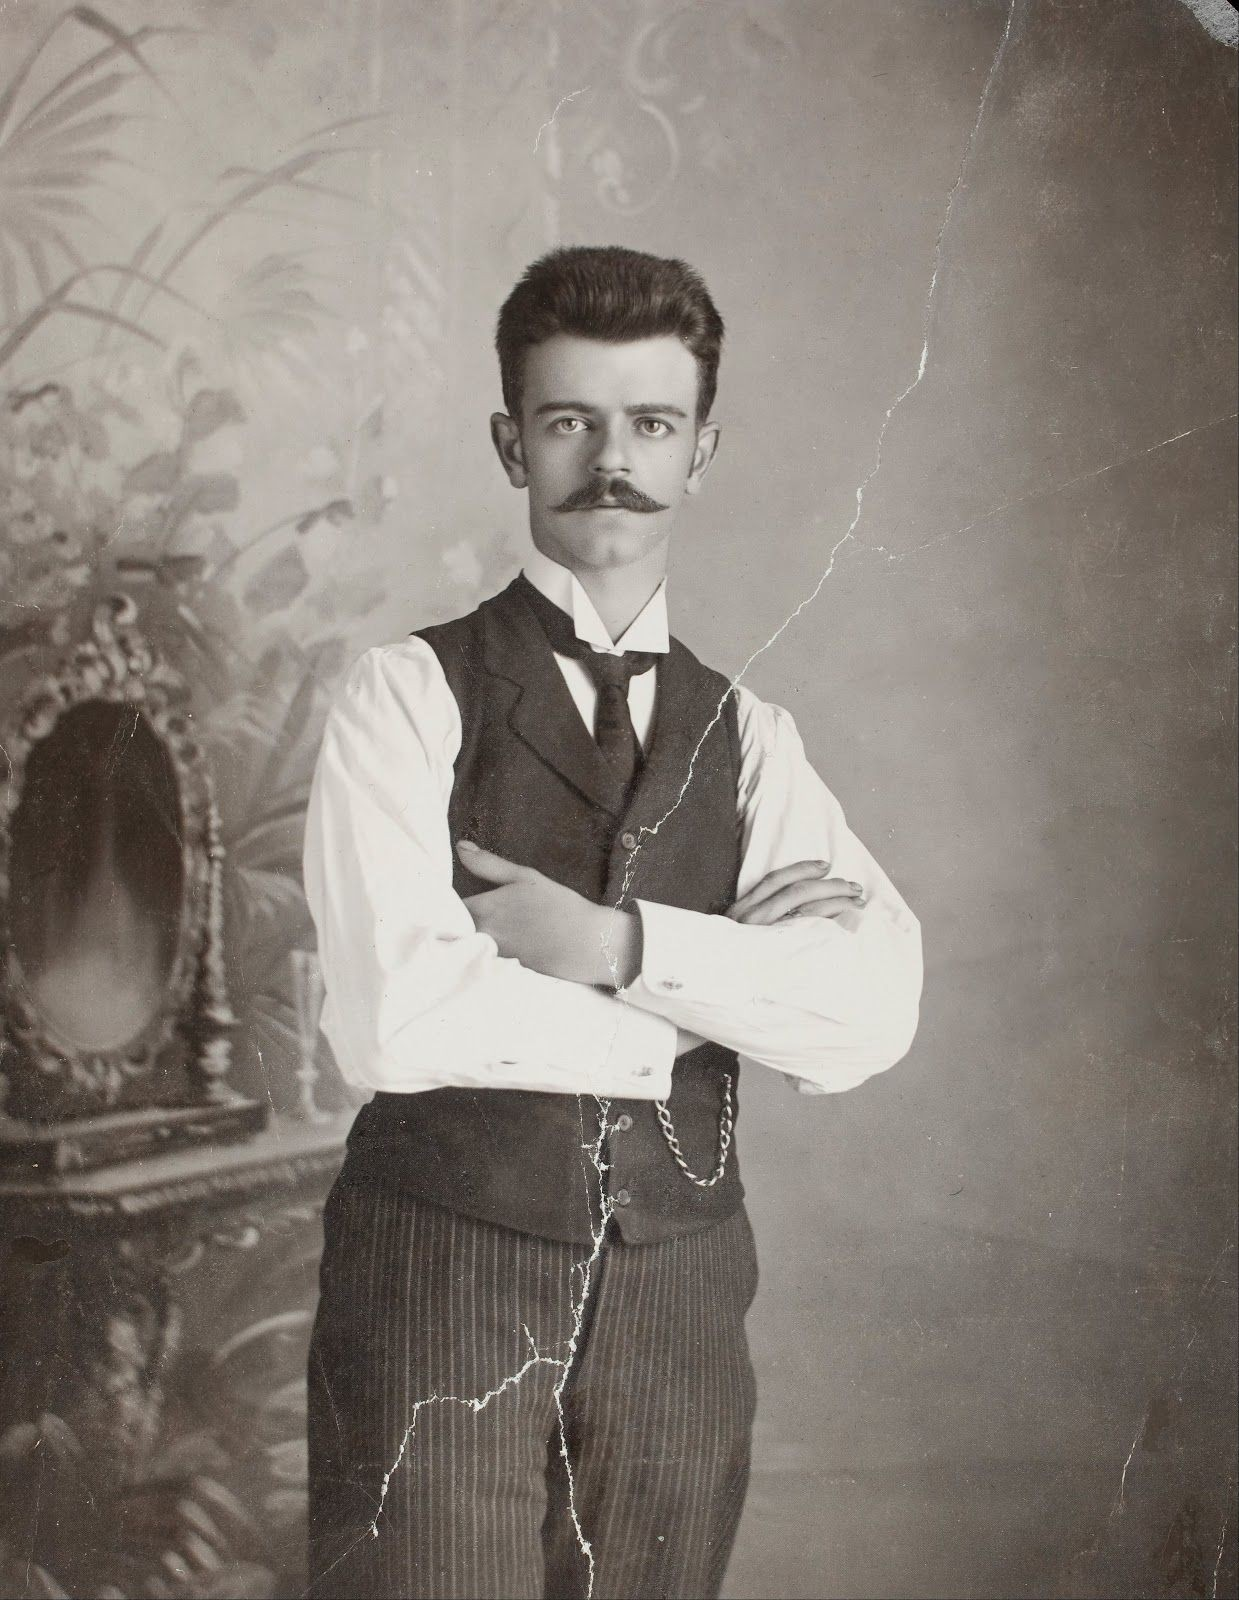 Guillermo Kahlo, Frida's German expat father. He changed his name from Wilhelm. Similarly, Frida changed the spelling of her name to make it less German.